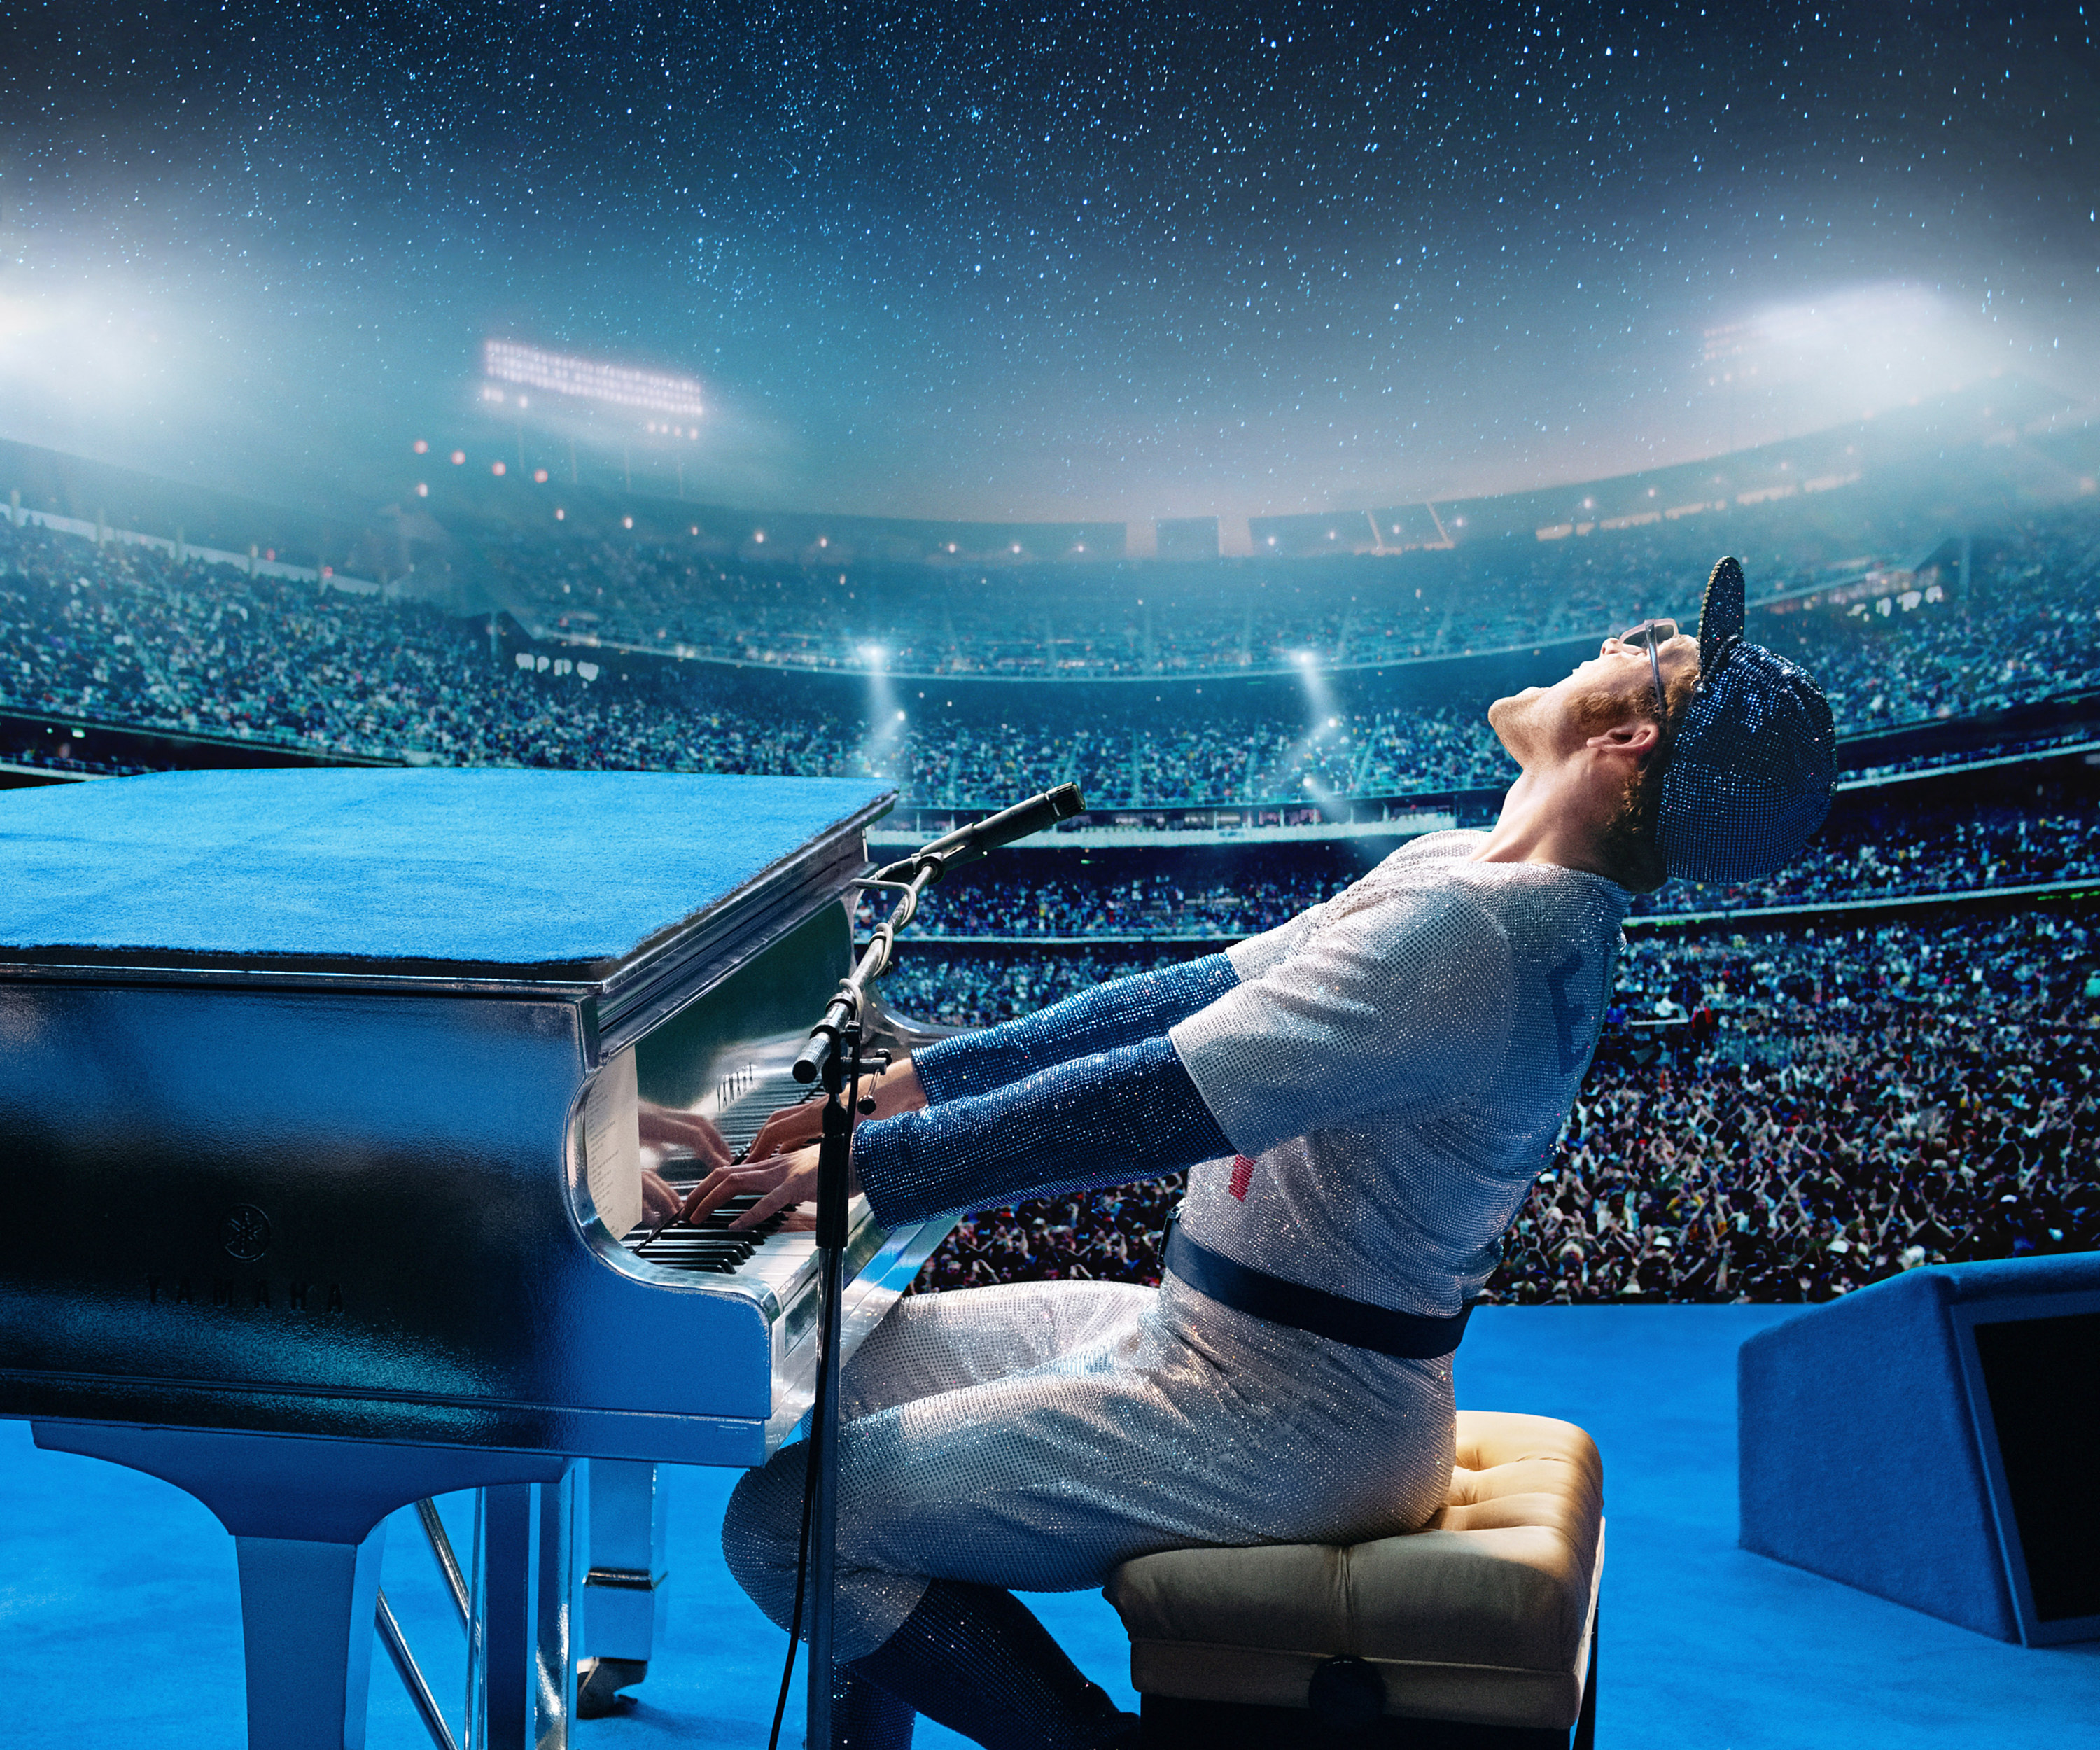 Image from the film Rocketman showing Taron Egerton as Elton John playing the piano in a packed stadium